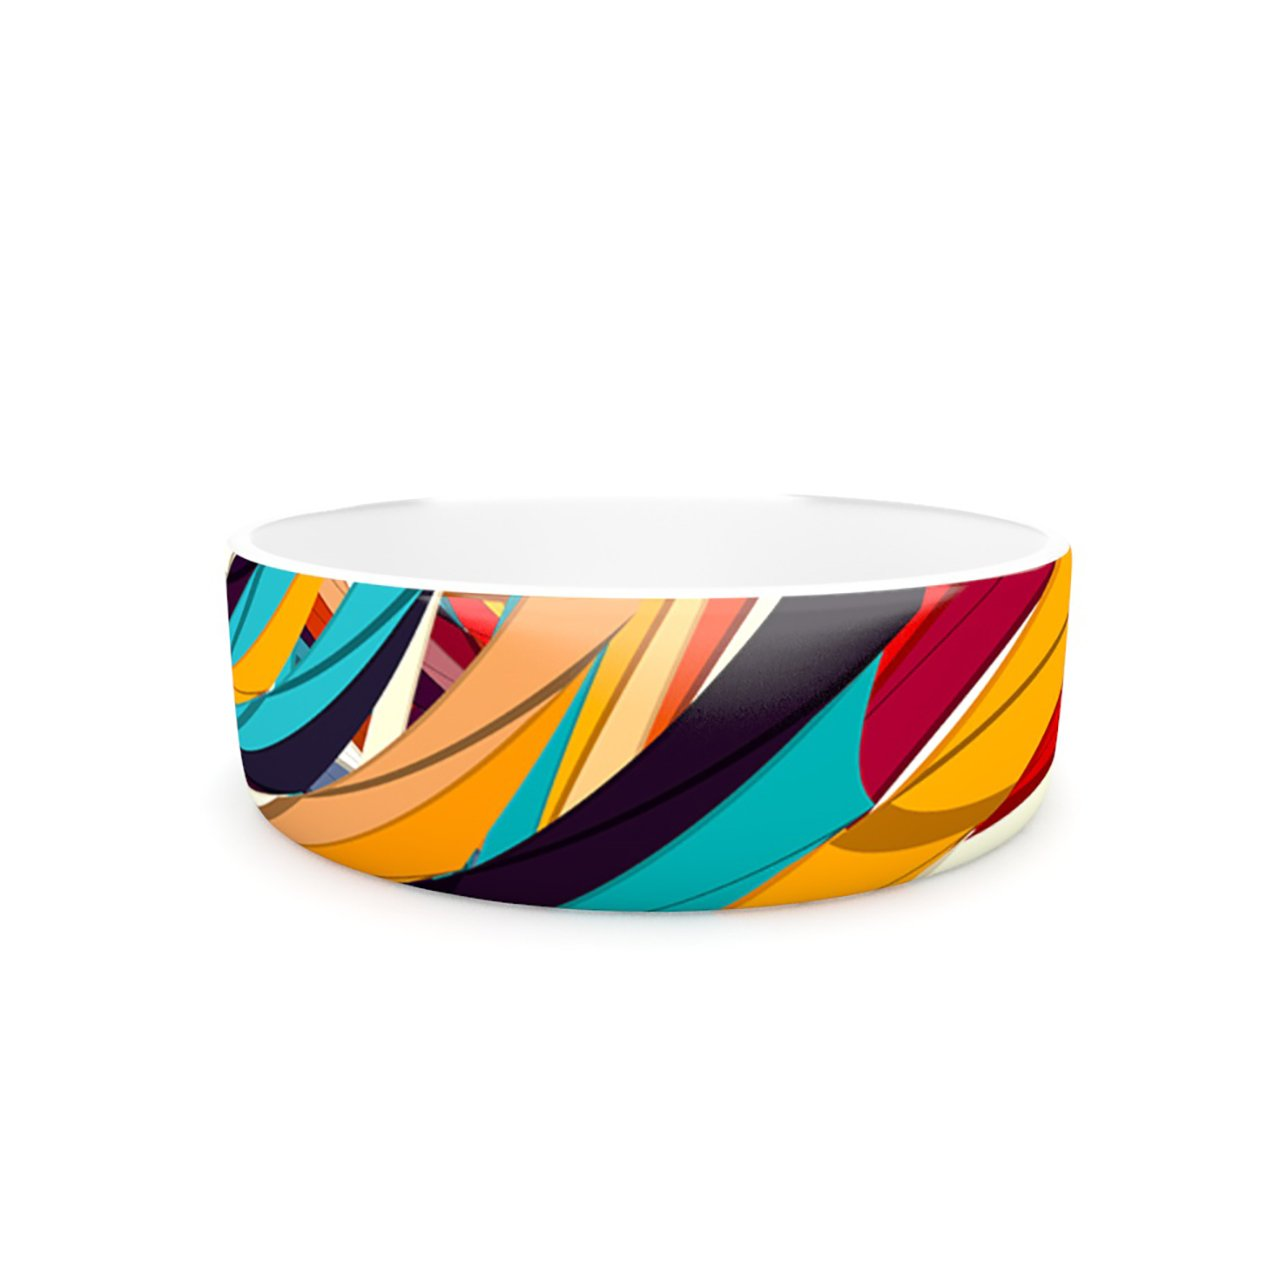 Kess InHouse Danny Ivan Demy World  Pet Bowl, 7-Inch, orange Yellow